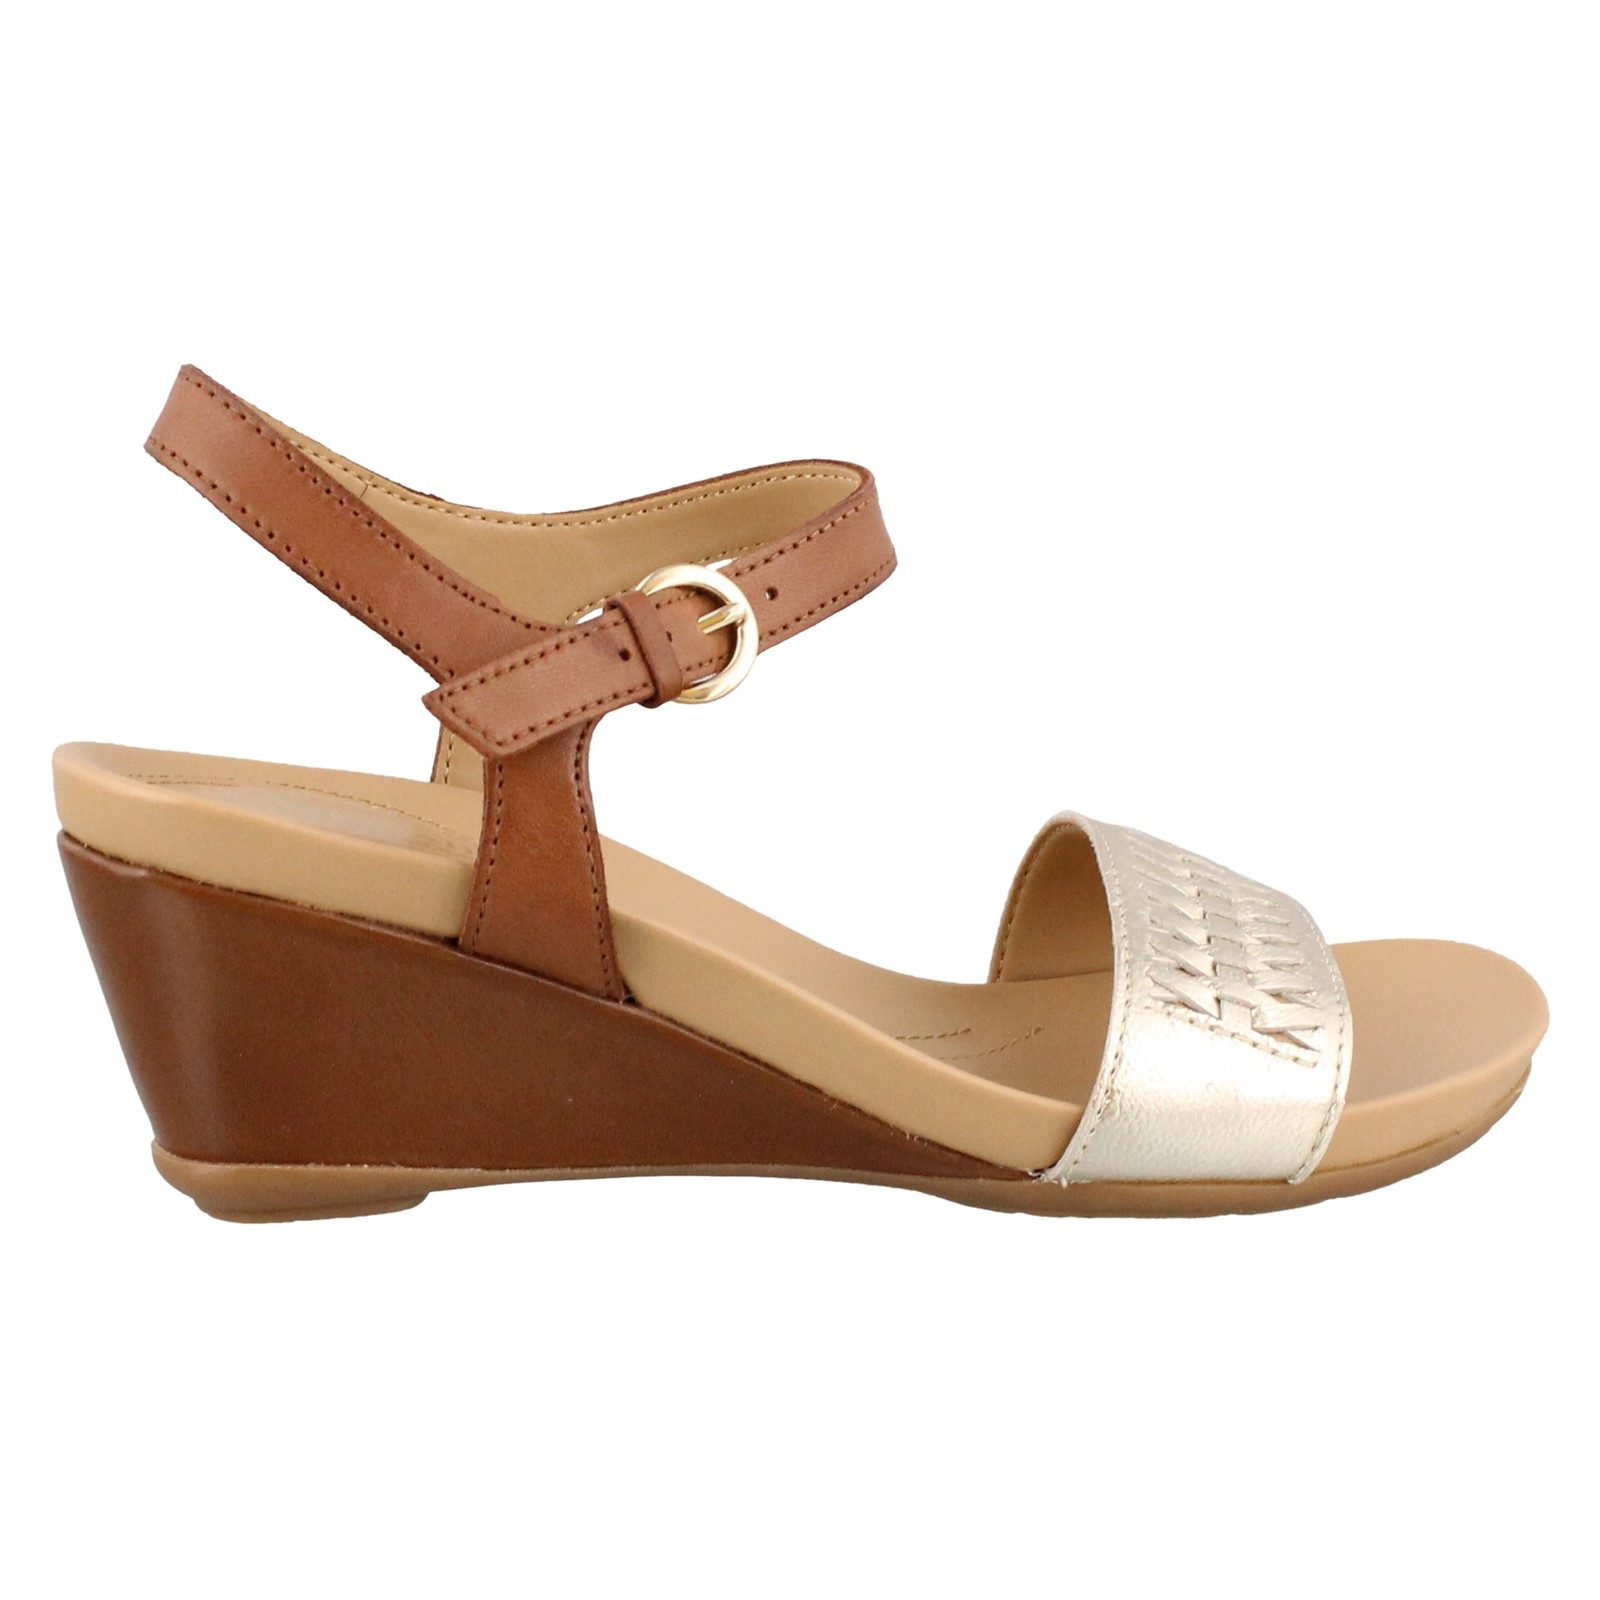 Women's Naturalizer, Swiftly Mid Heel Wedge Sandal